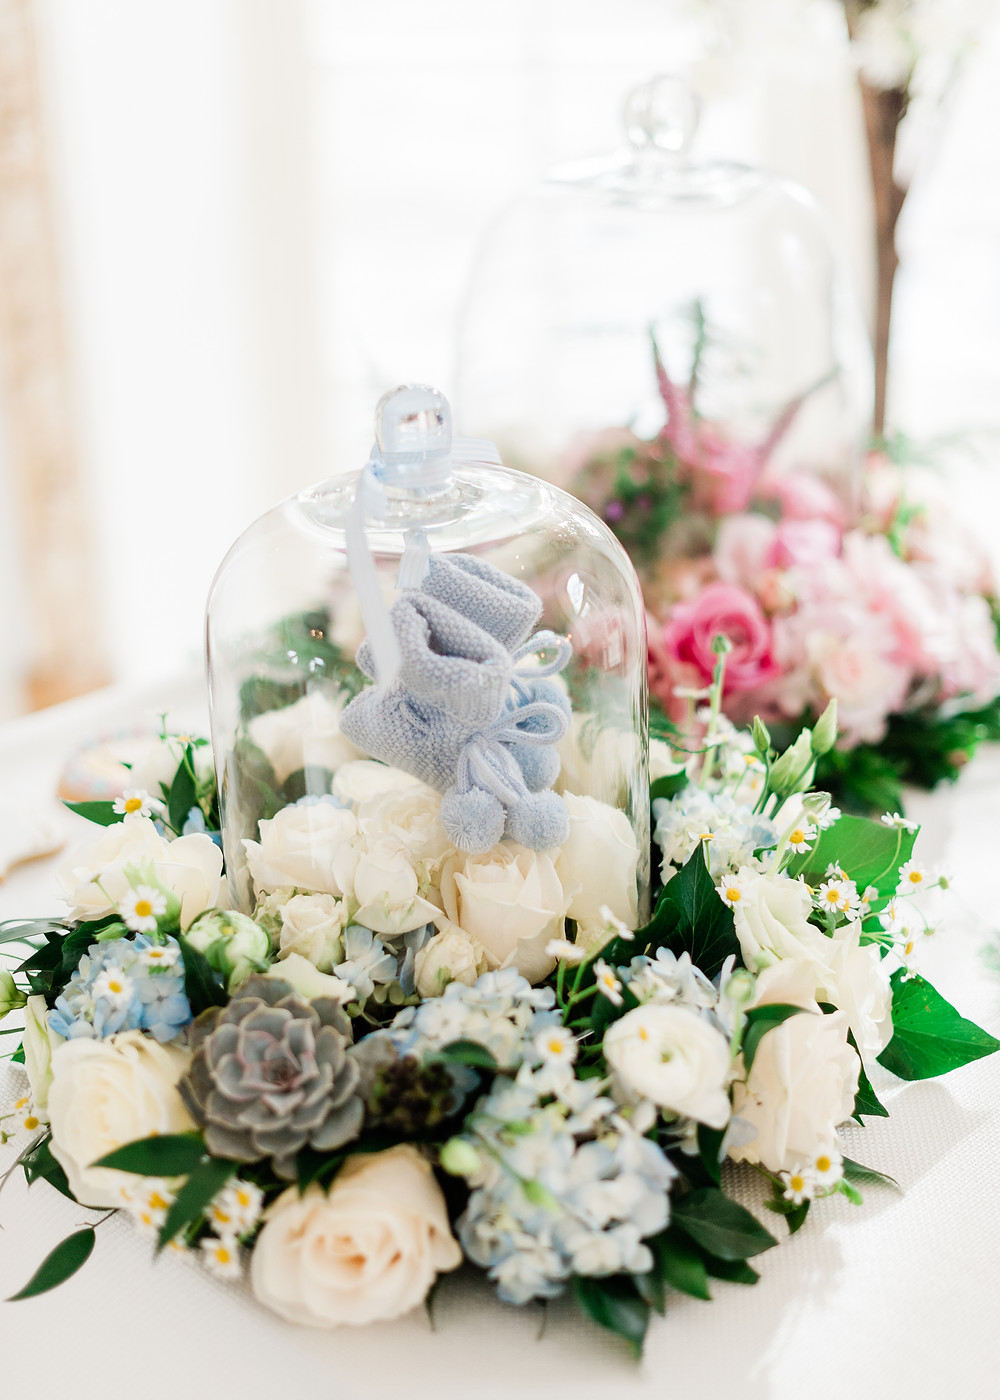 Baby shower decor for baby boy, flowers for baby boy